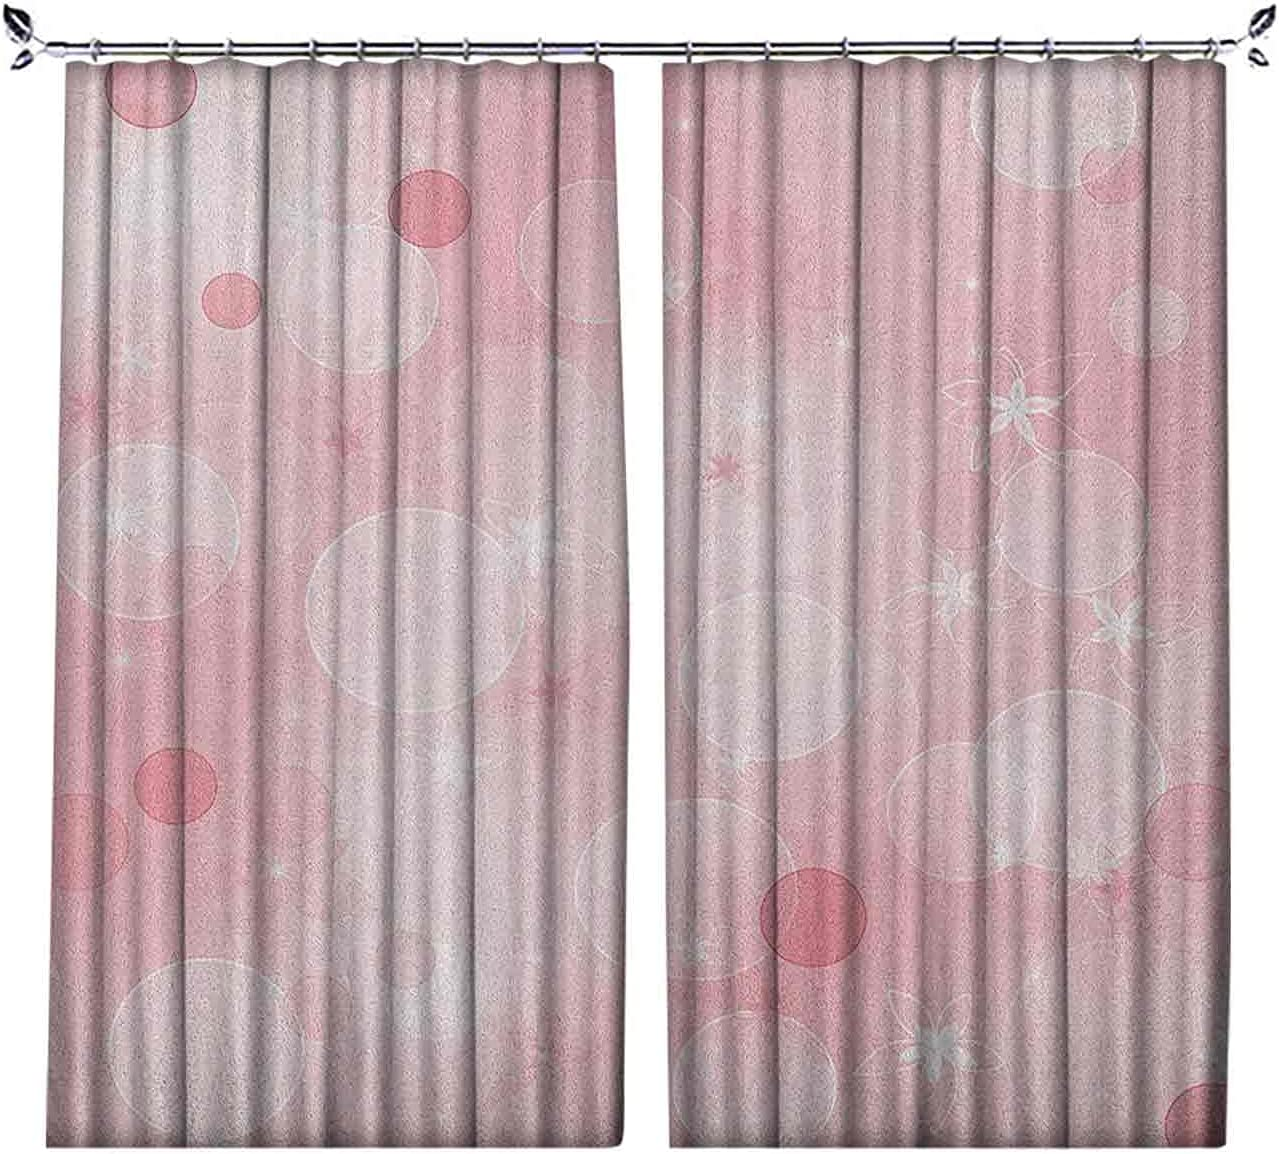 Pinch Pleat Textured Light Ranking TOP4 Pink Floral with Background Curtains Manufacturer direct delivery